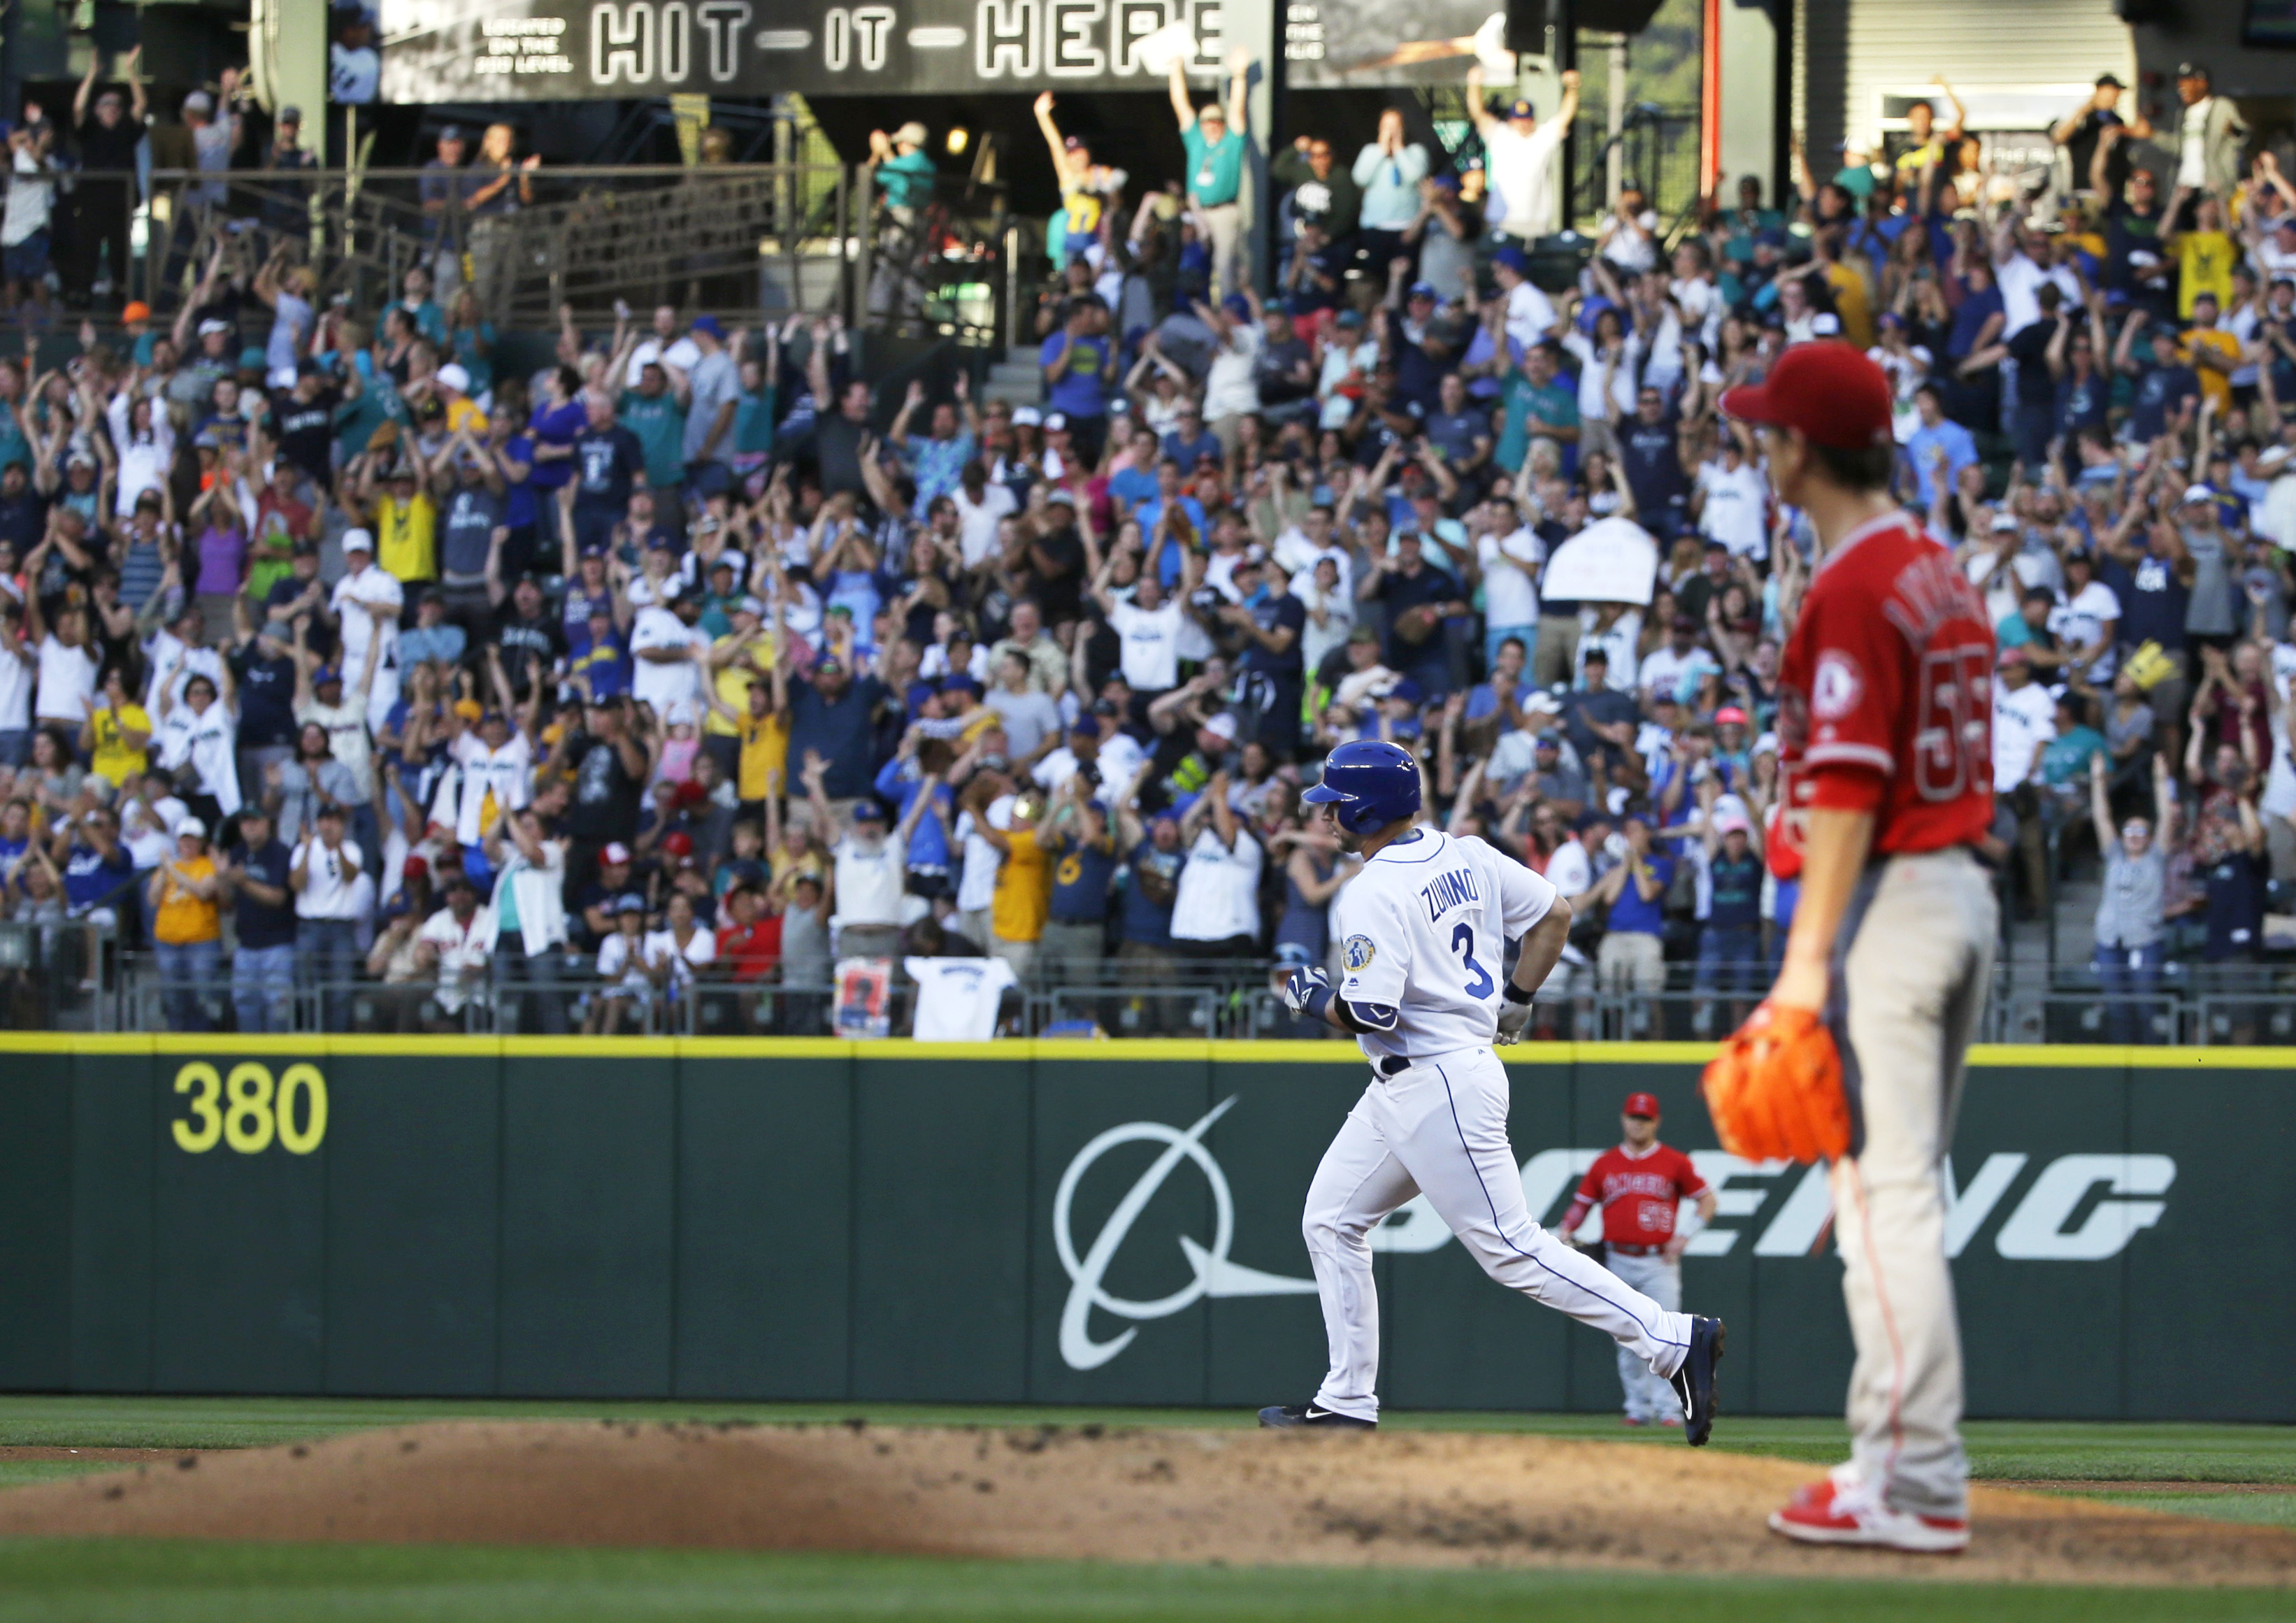 Los Angeles Angels starting pitcher Tim Lincecum, right, watches as Seattle Mariners' Mike Zunino (3) rounds the bases after Zunino hit a three-run home run to score Adam Lind and Nelson Cruz during the first inning of a baseball game, Friday, Aug. 5, 201